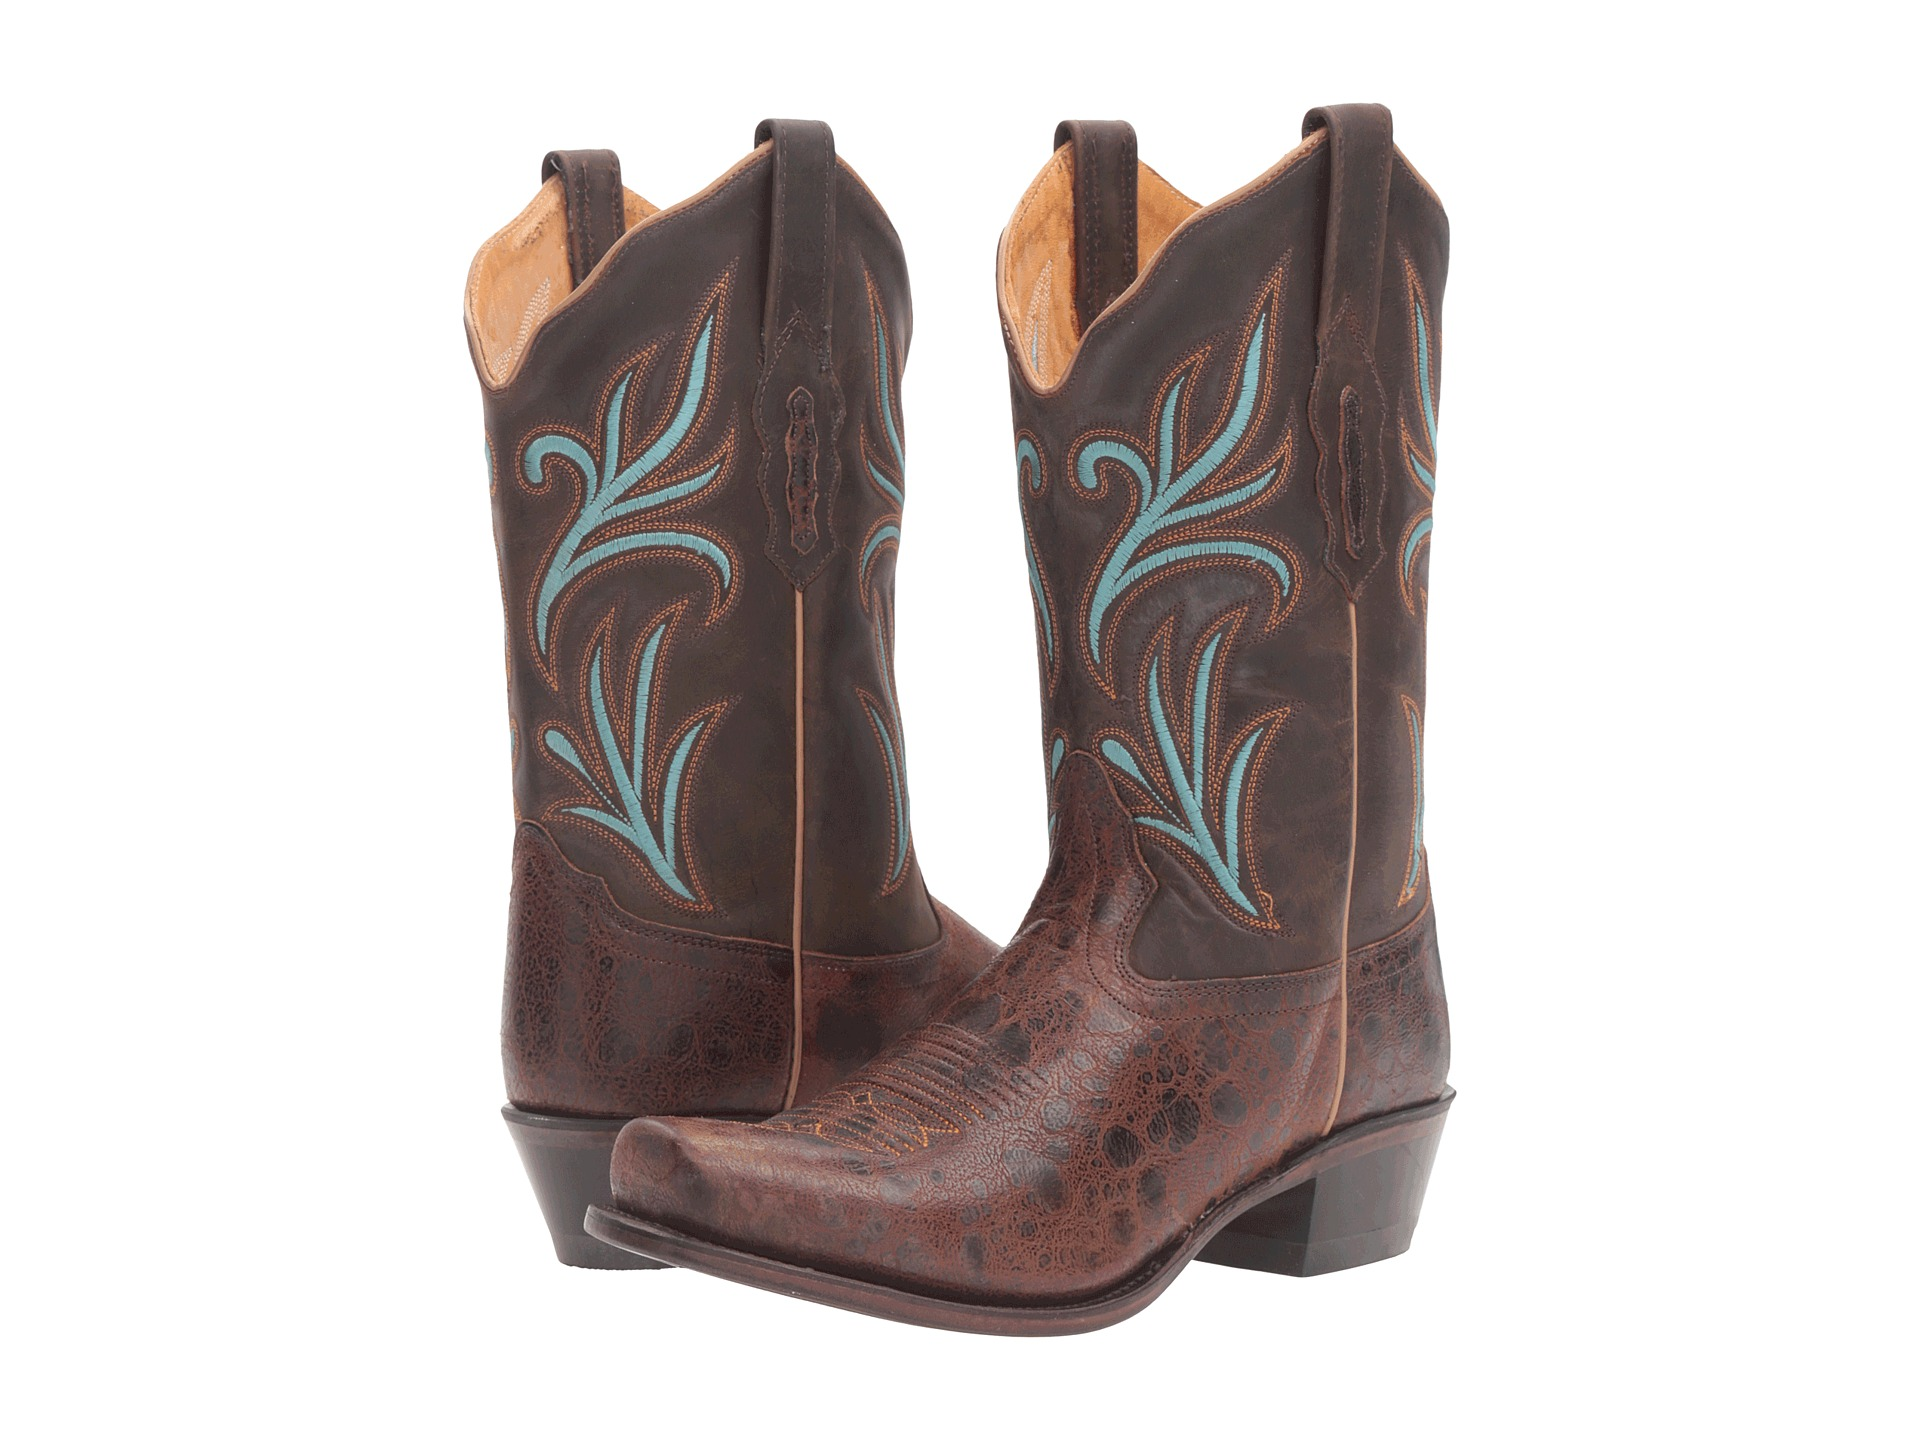 west boots 18010 at zappos